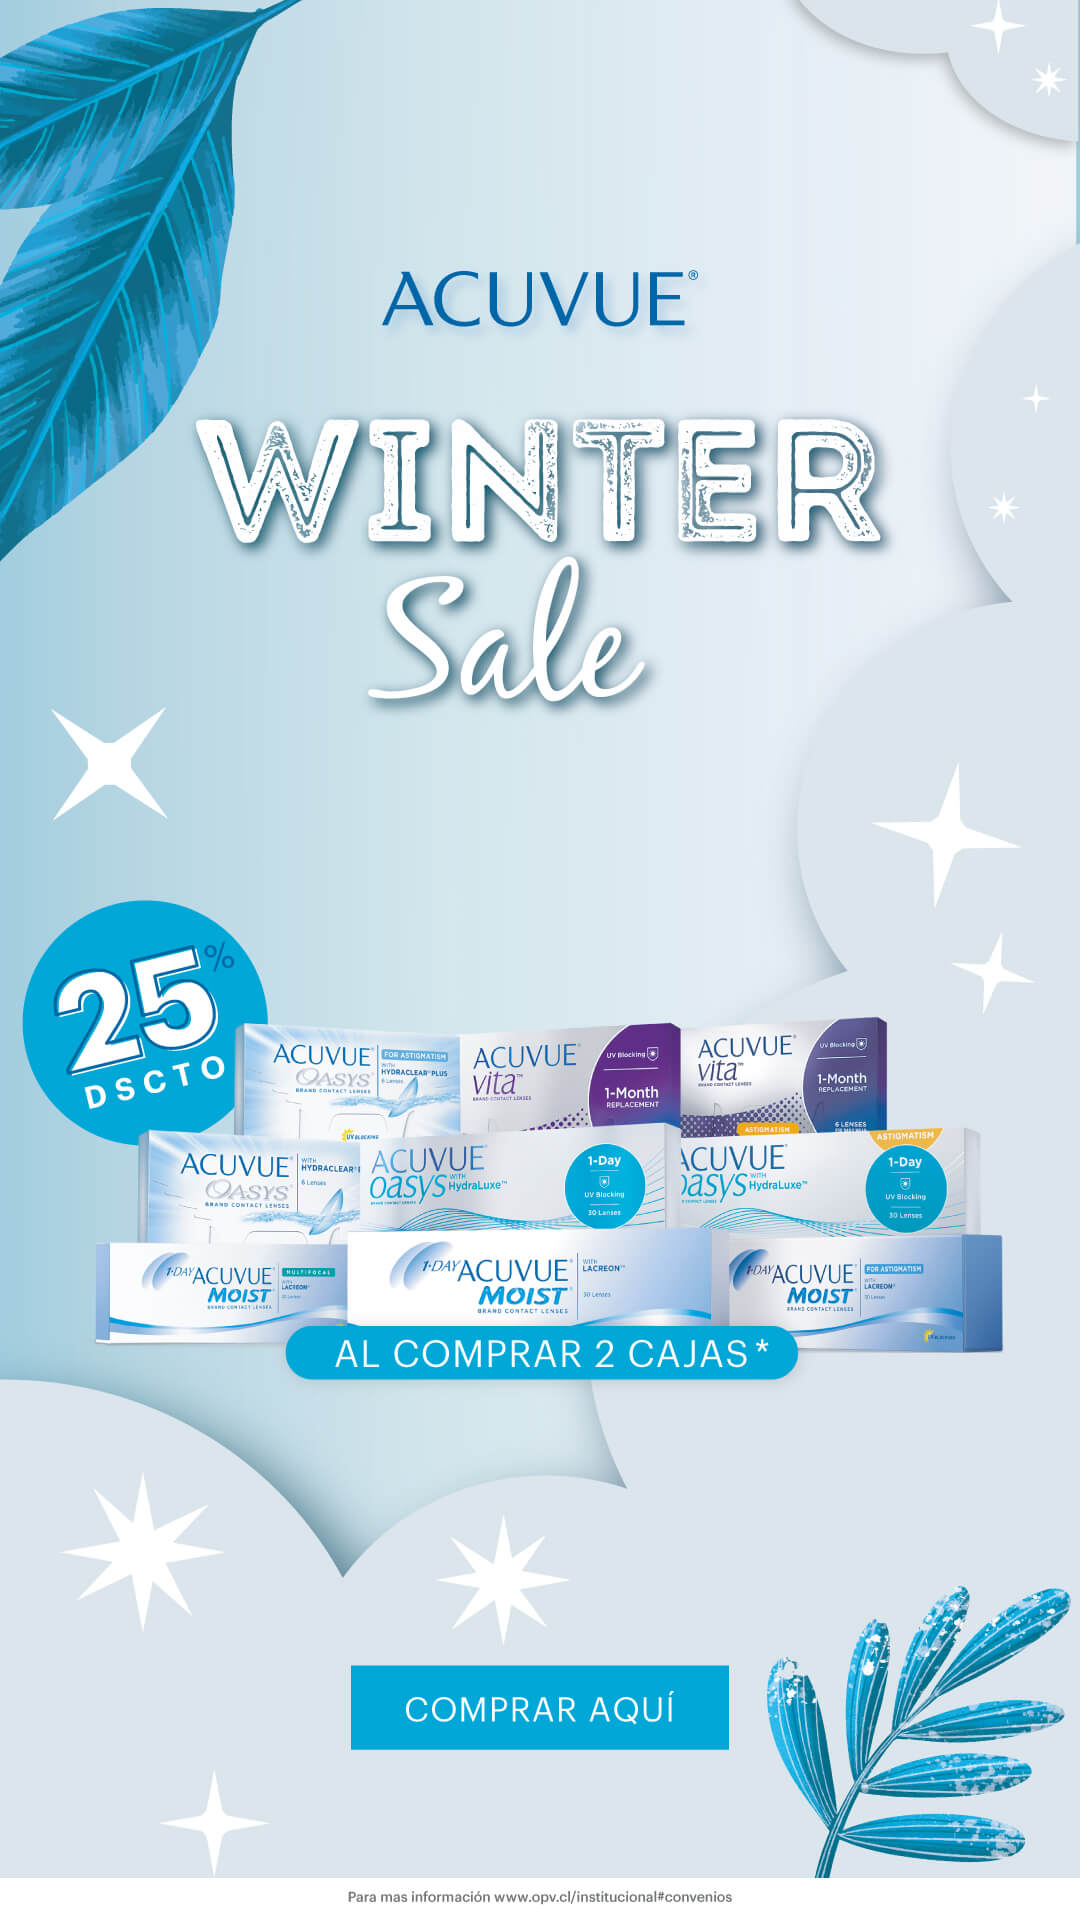 ACUVUE Winter Sale Mobile